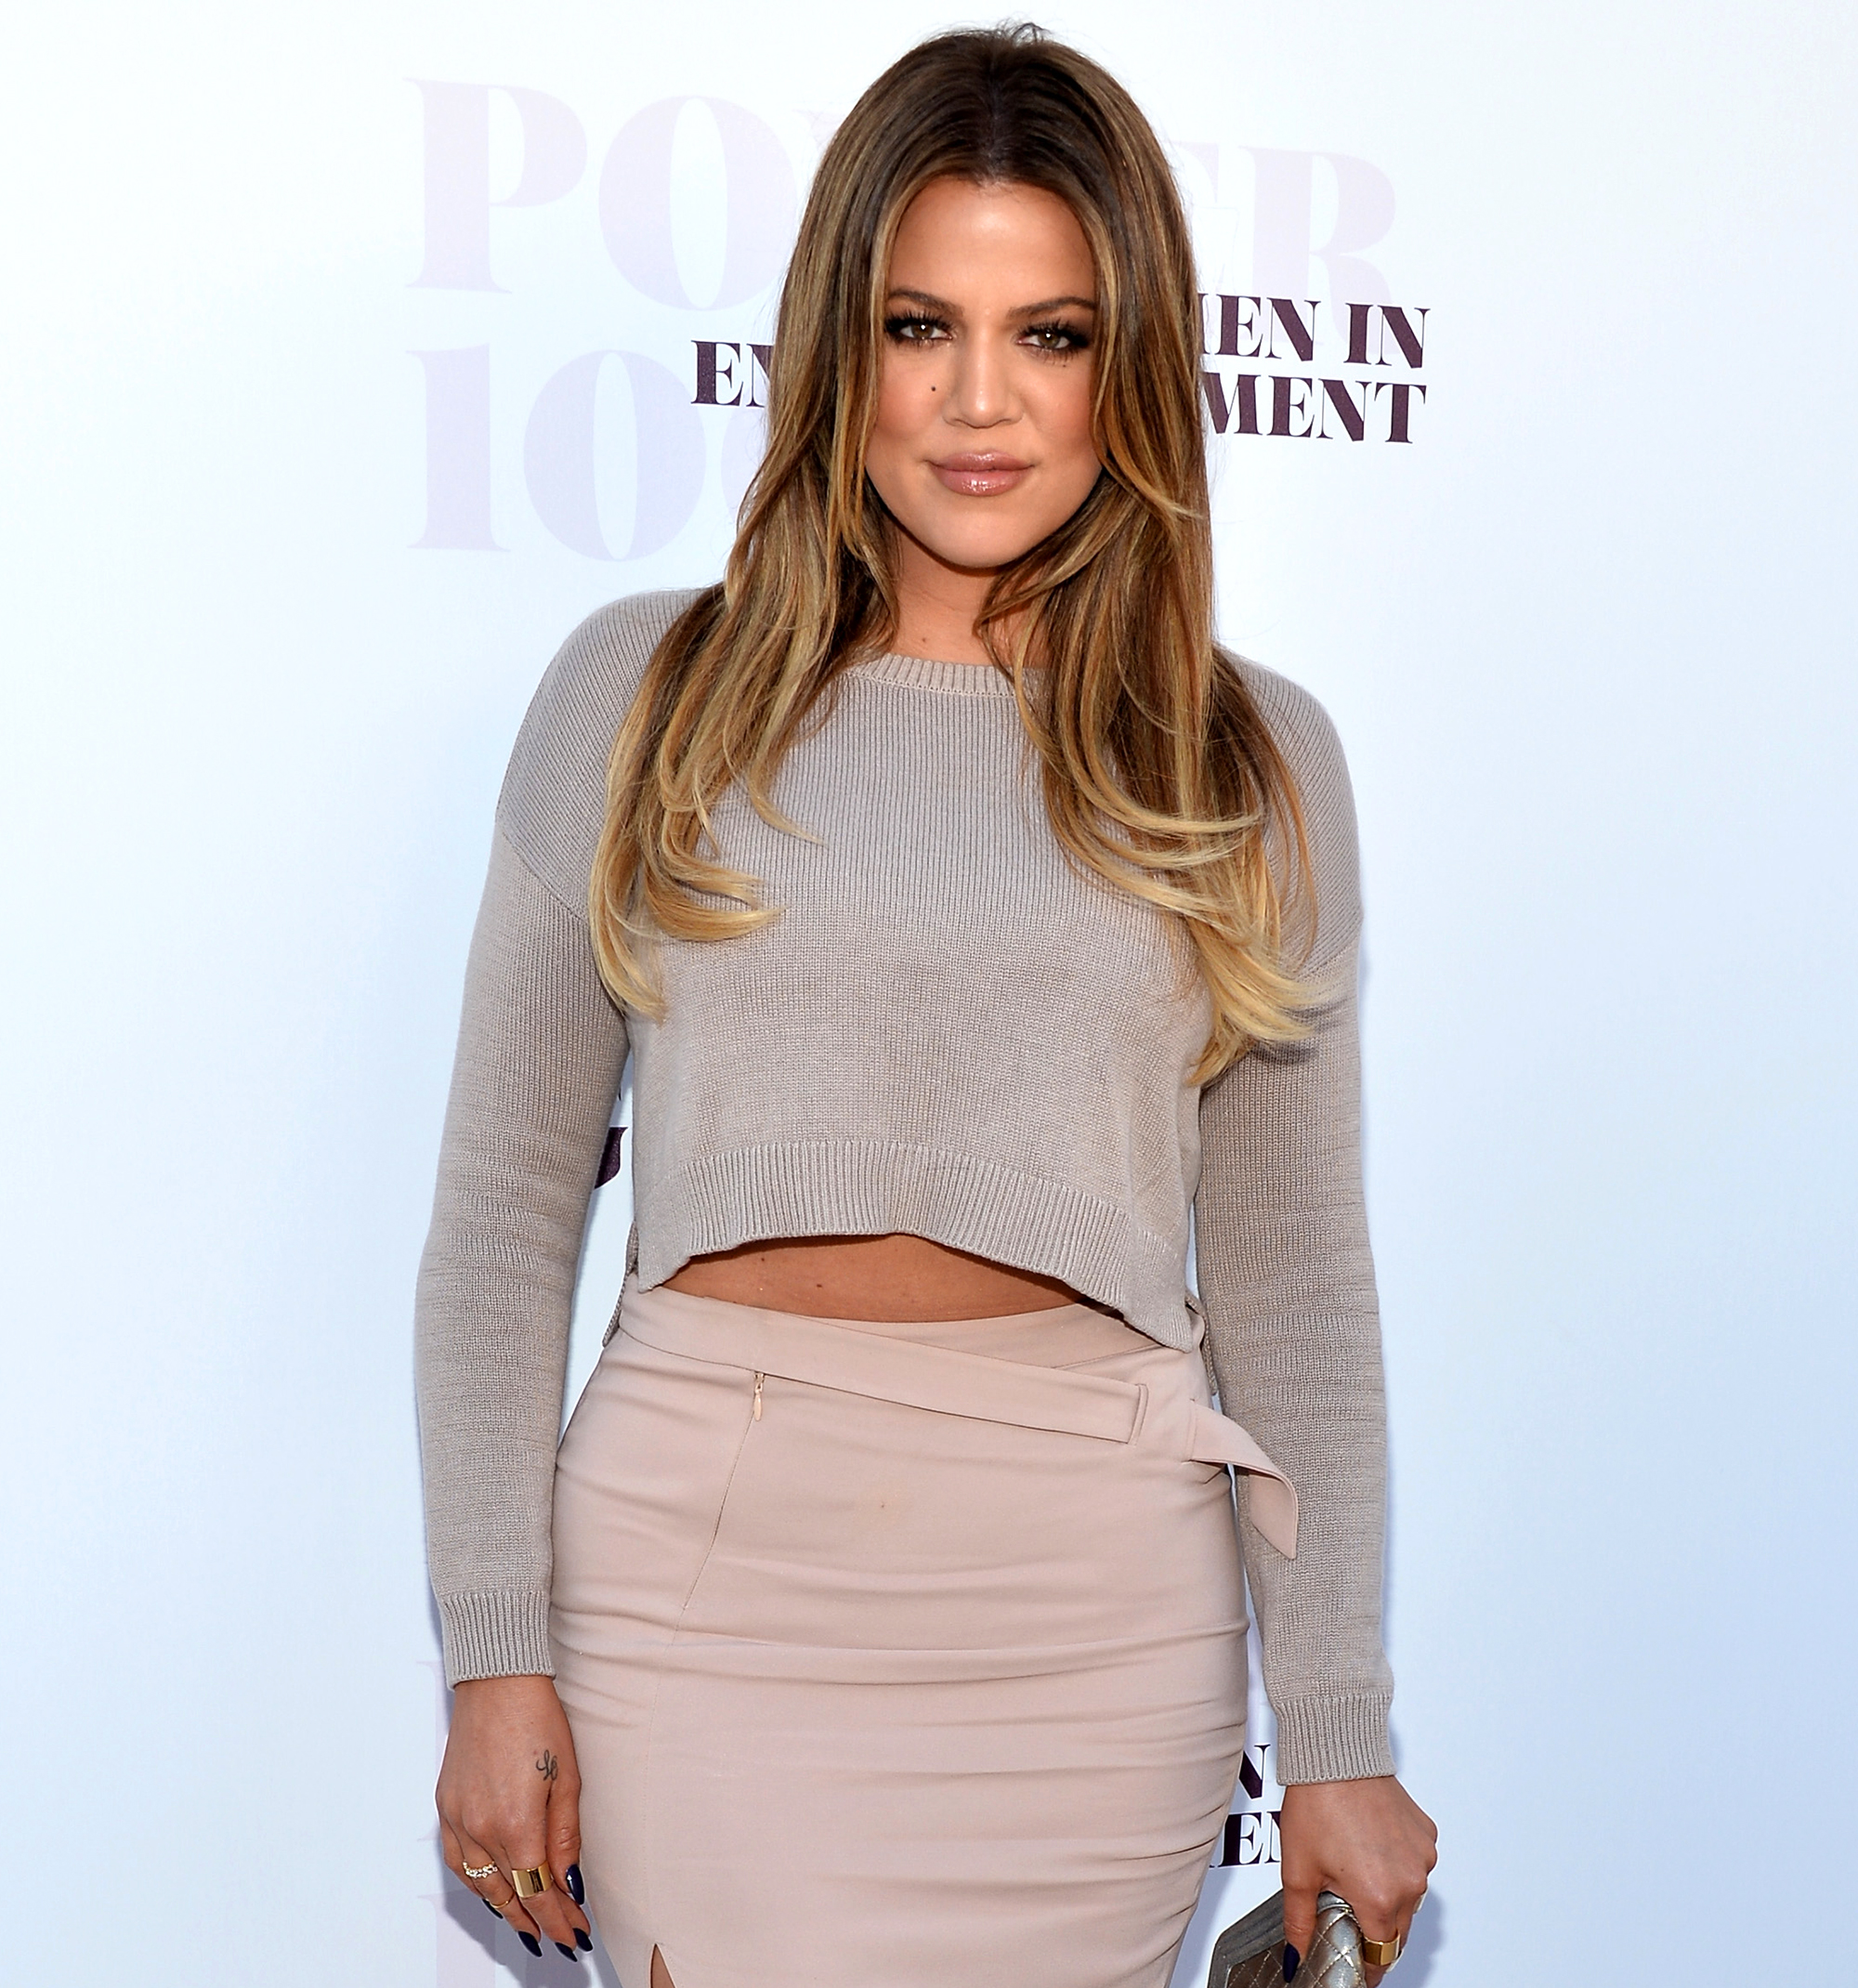 Khloe Kardashian Misses Dog Gabbana as She Approaches Baby's Due Date